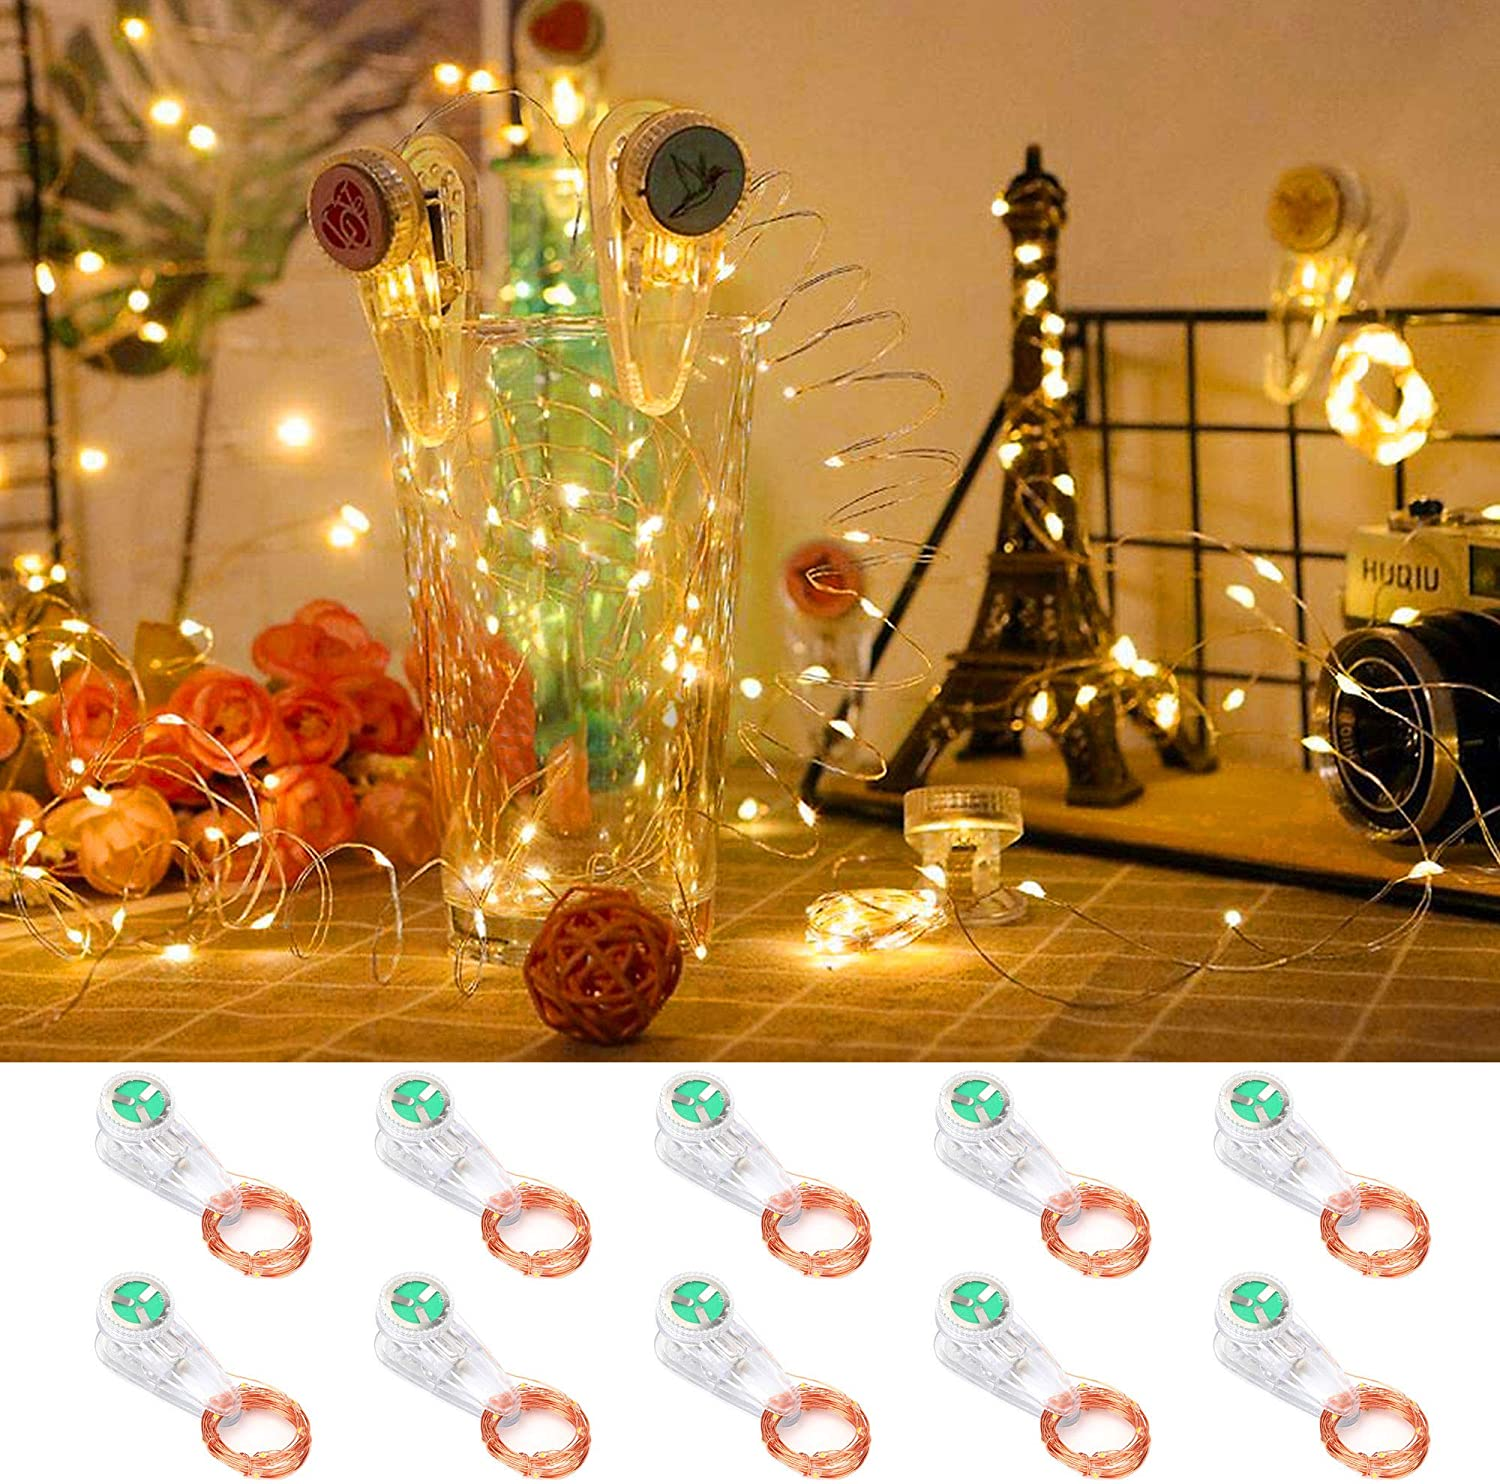 LED String Lights Fairy Wire Mini Lights Battery Operated DIY Bar Starry Wedding Home Party Valentine Home Decor ,10-Pack,20LEDS 6.56ft,Warm White (Clamp String Light, Warm White)